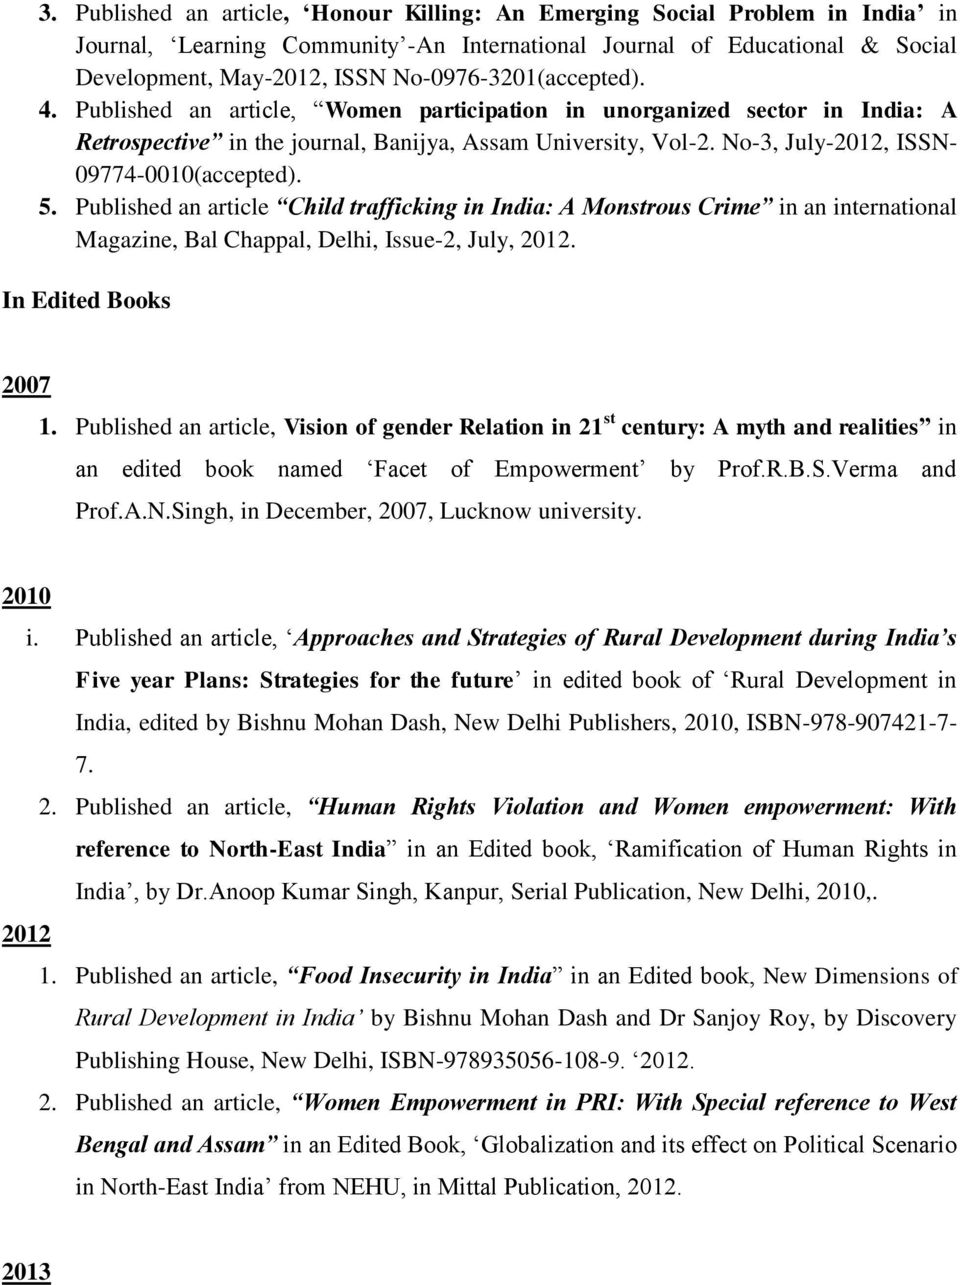 No-3, July-2012, ISSN- 09774-0010(accepted). 5. Published an article Child trafficking in India: A Monstrous Crime in an international Magazine, Bal Chappal, Delhi, Issue-2, July, 2012.